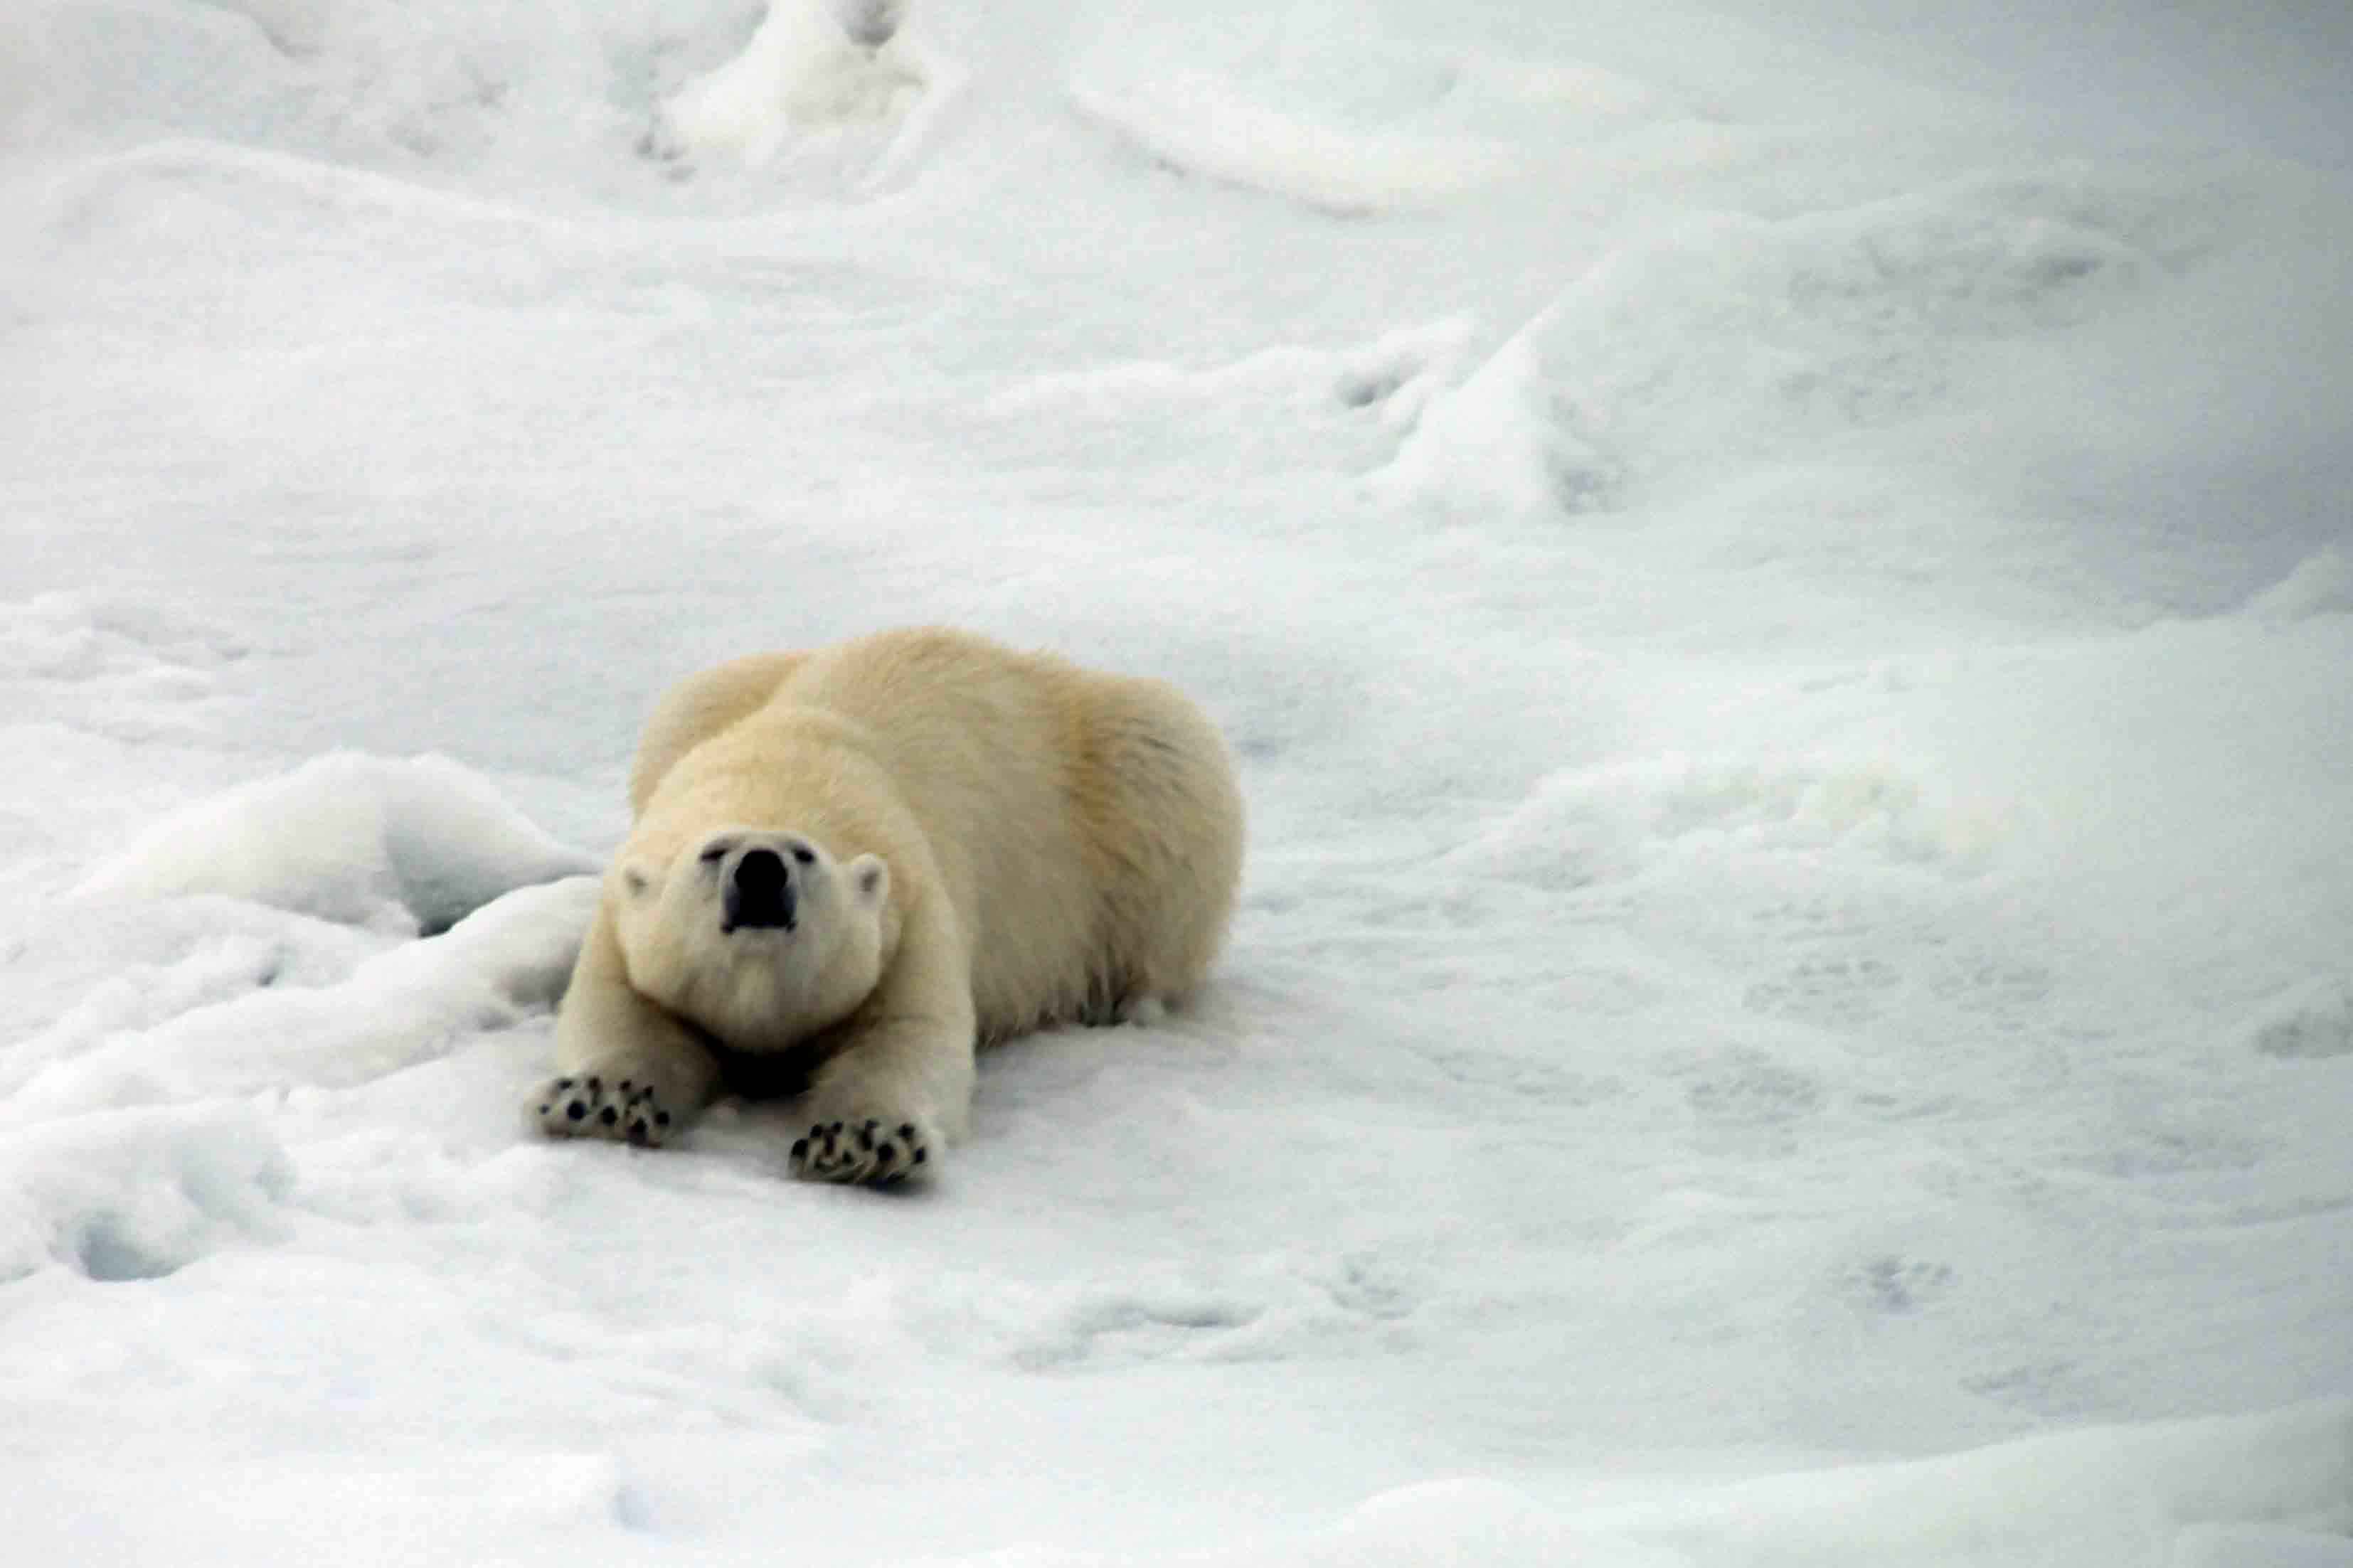 mama polar bear stretching